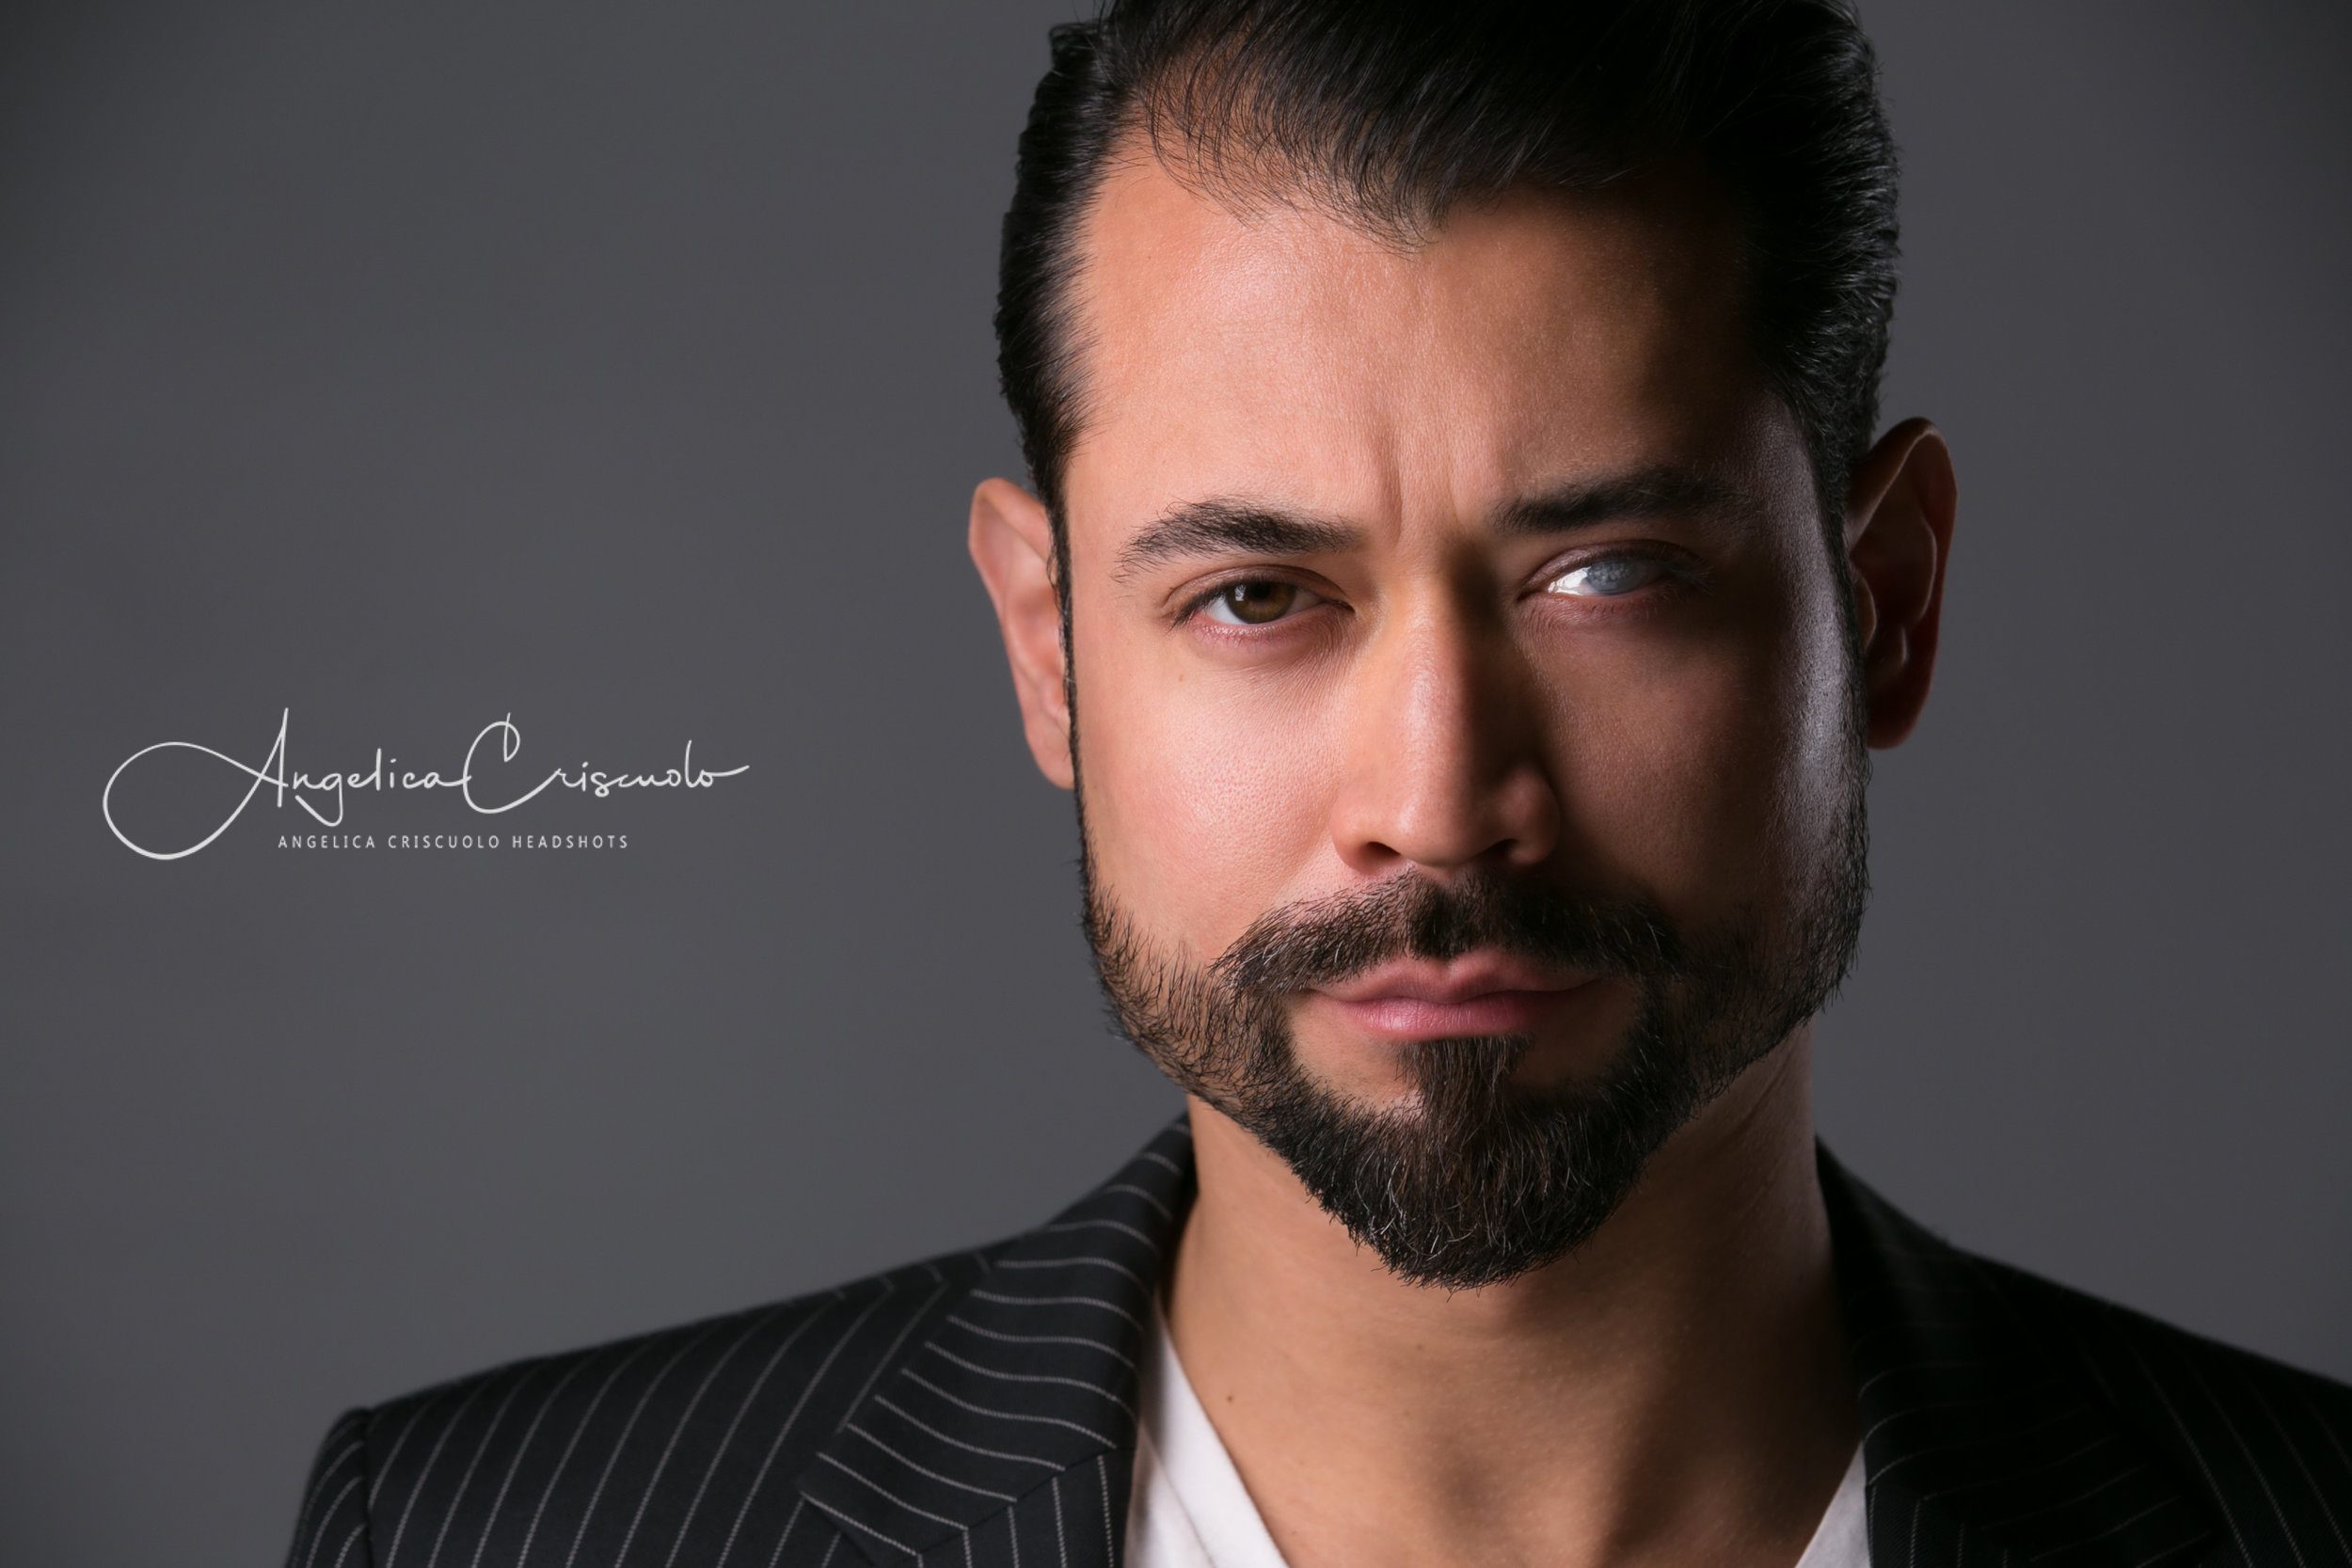 New_York_Headshot_Photographer_Angelica_Criscuolo_Photographya-8-1.jpg